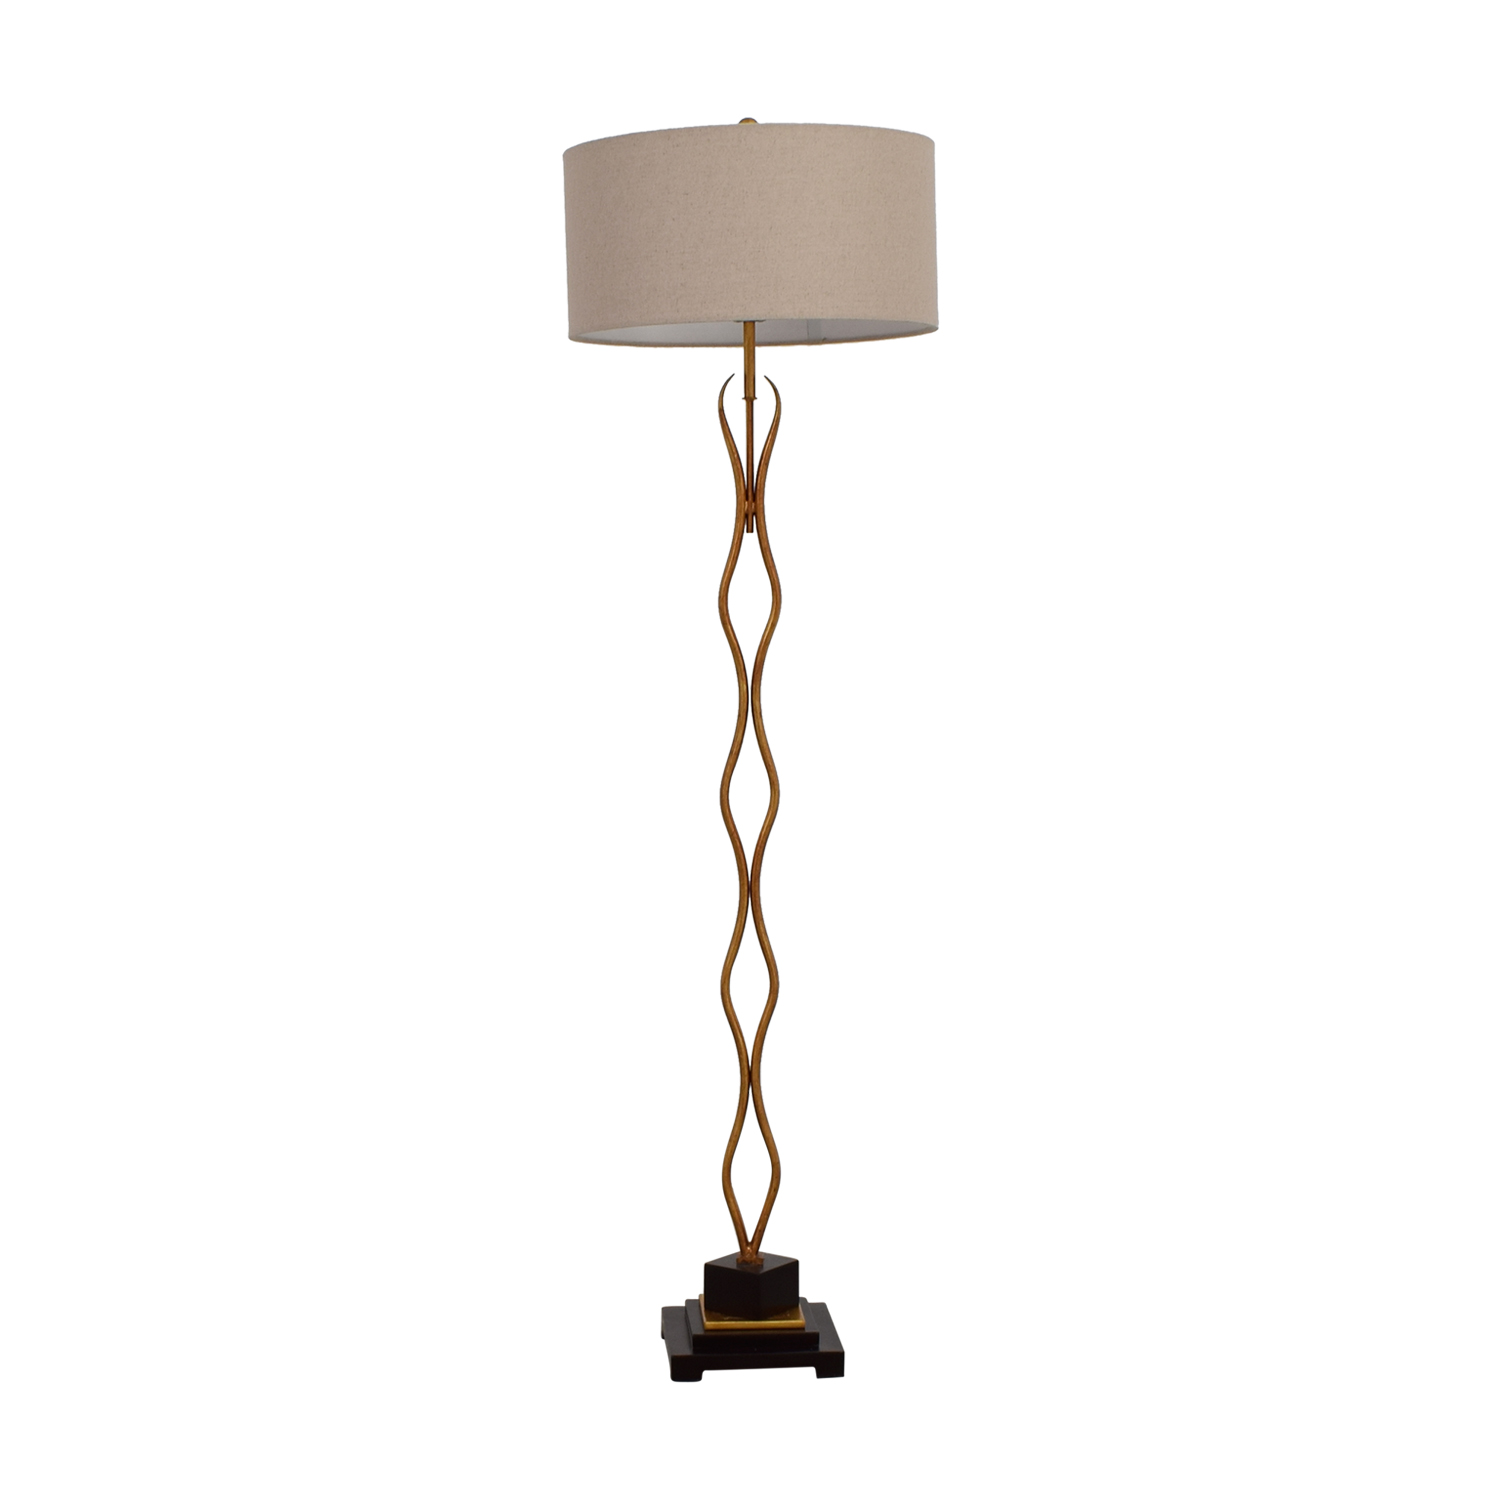 Wayfair Metal Wavy Gold Floor Lamp sale